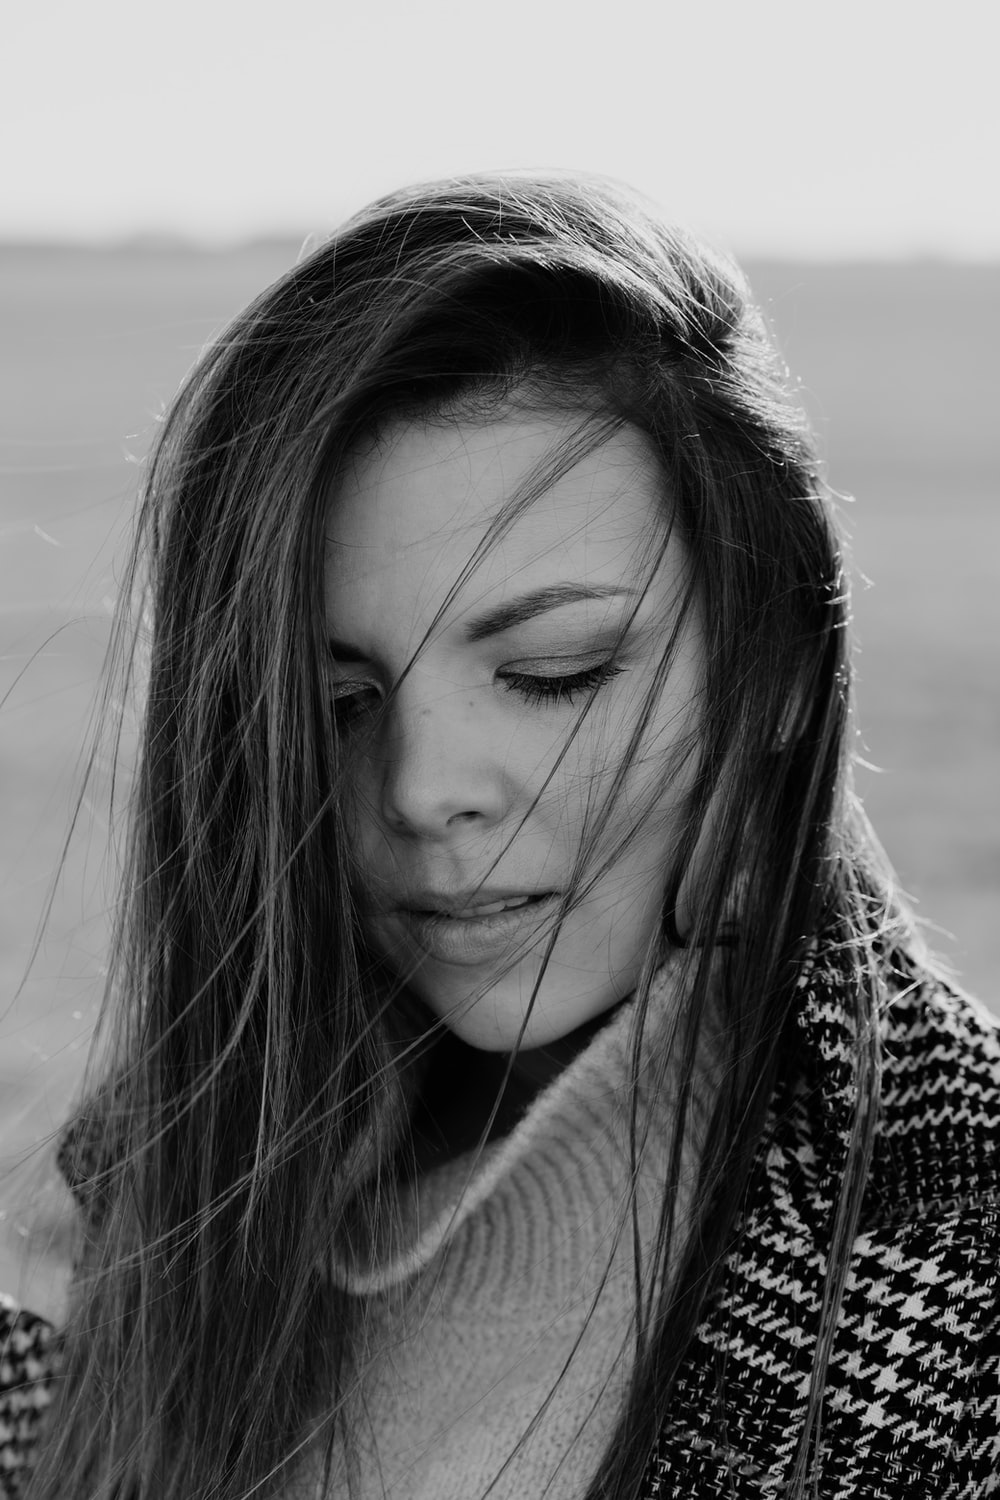 grayscale photo of woman in knit sweater